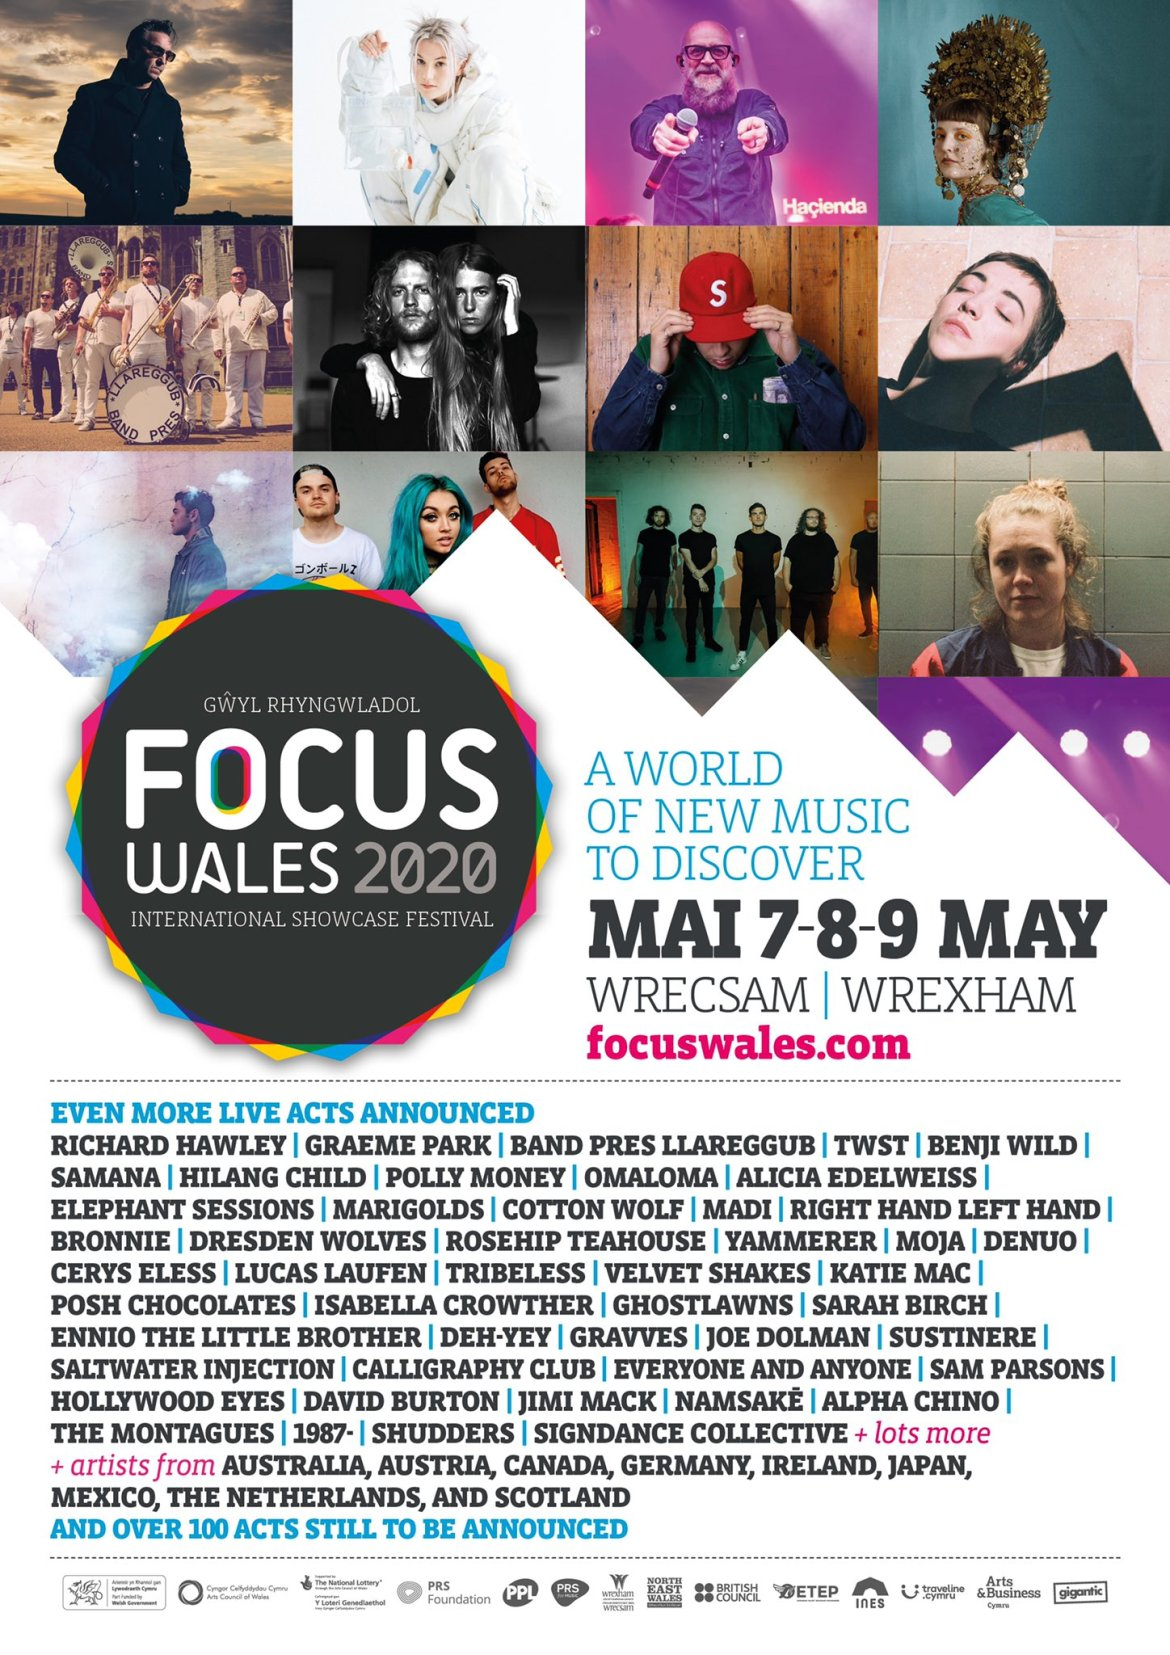 NEWS: Richard Hawley, BRONNIE,  Rosehip Teahouse, DJ Graeme Park amongst new additions for Focus Wales 2020